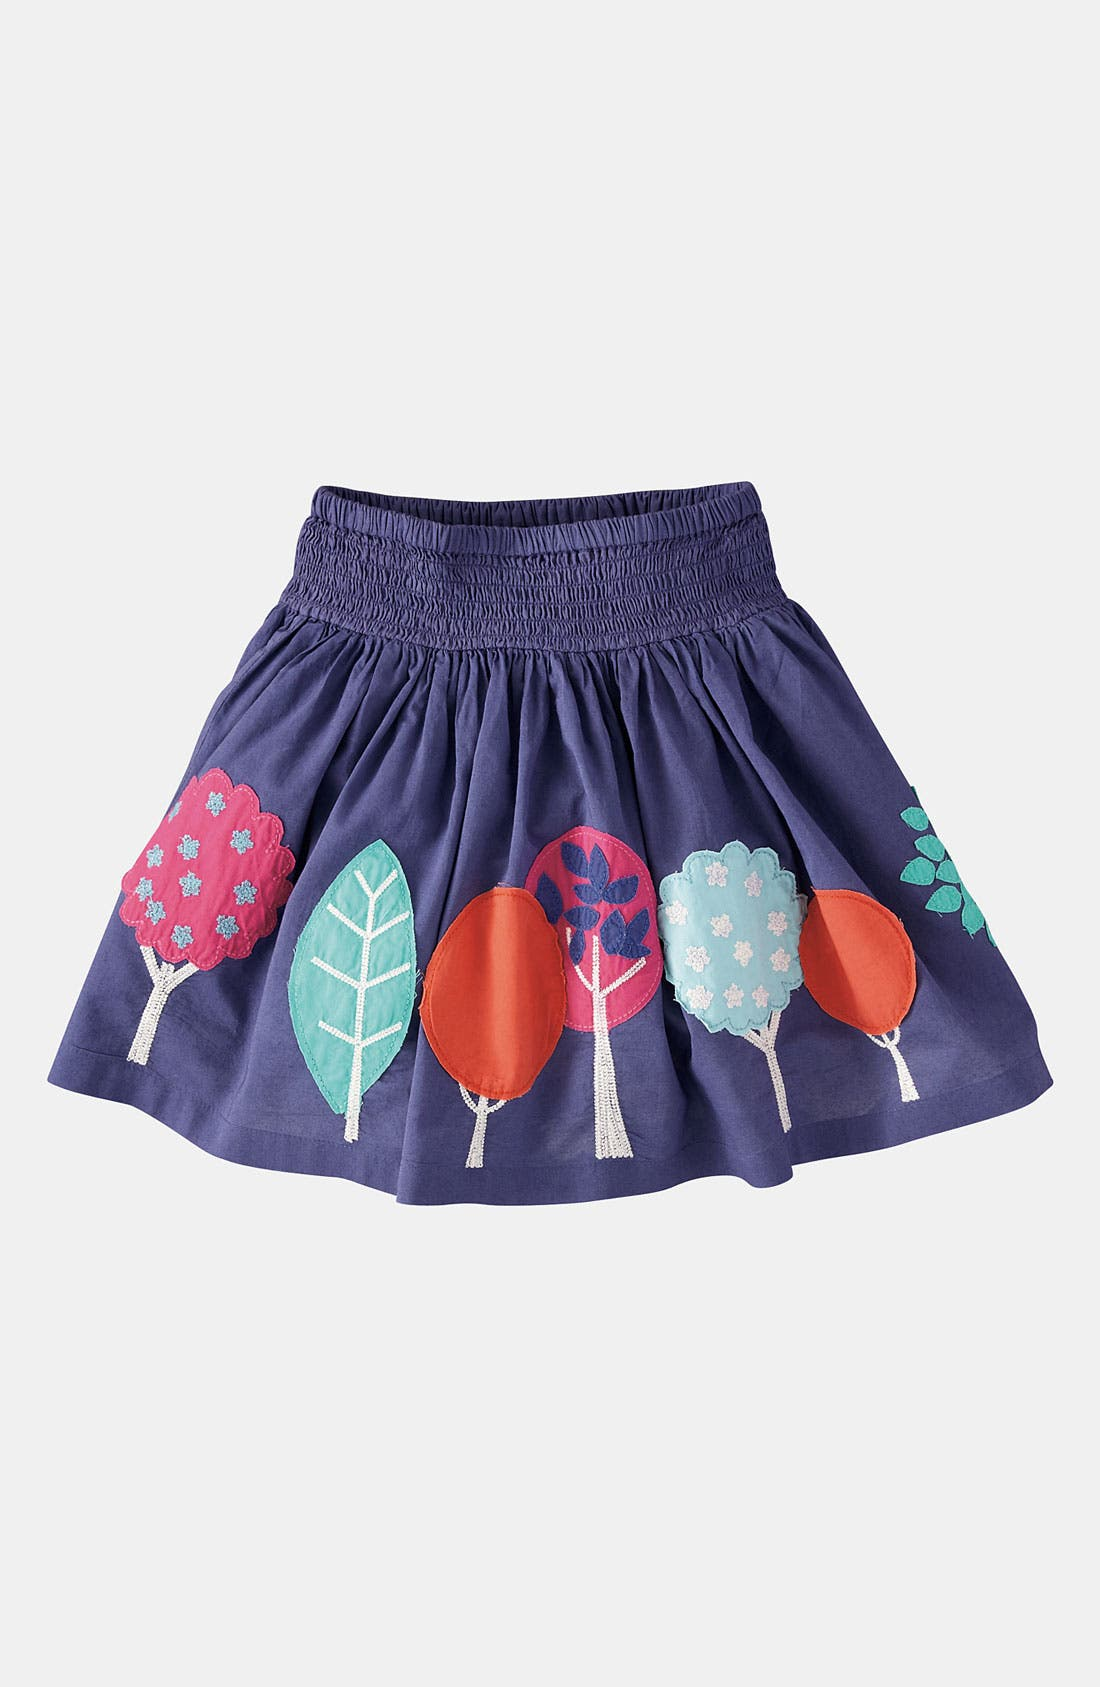 Main Image - Mini Boden Appliqué Skirt (Toddler)